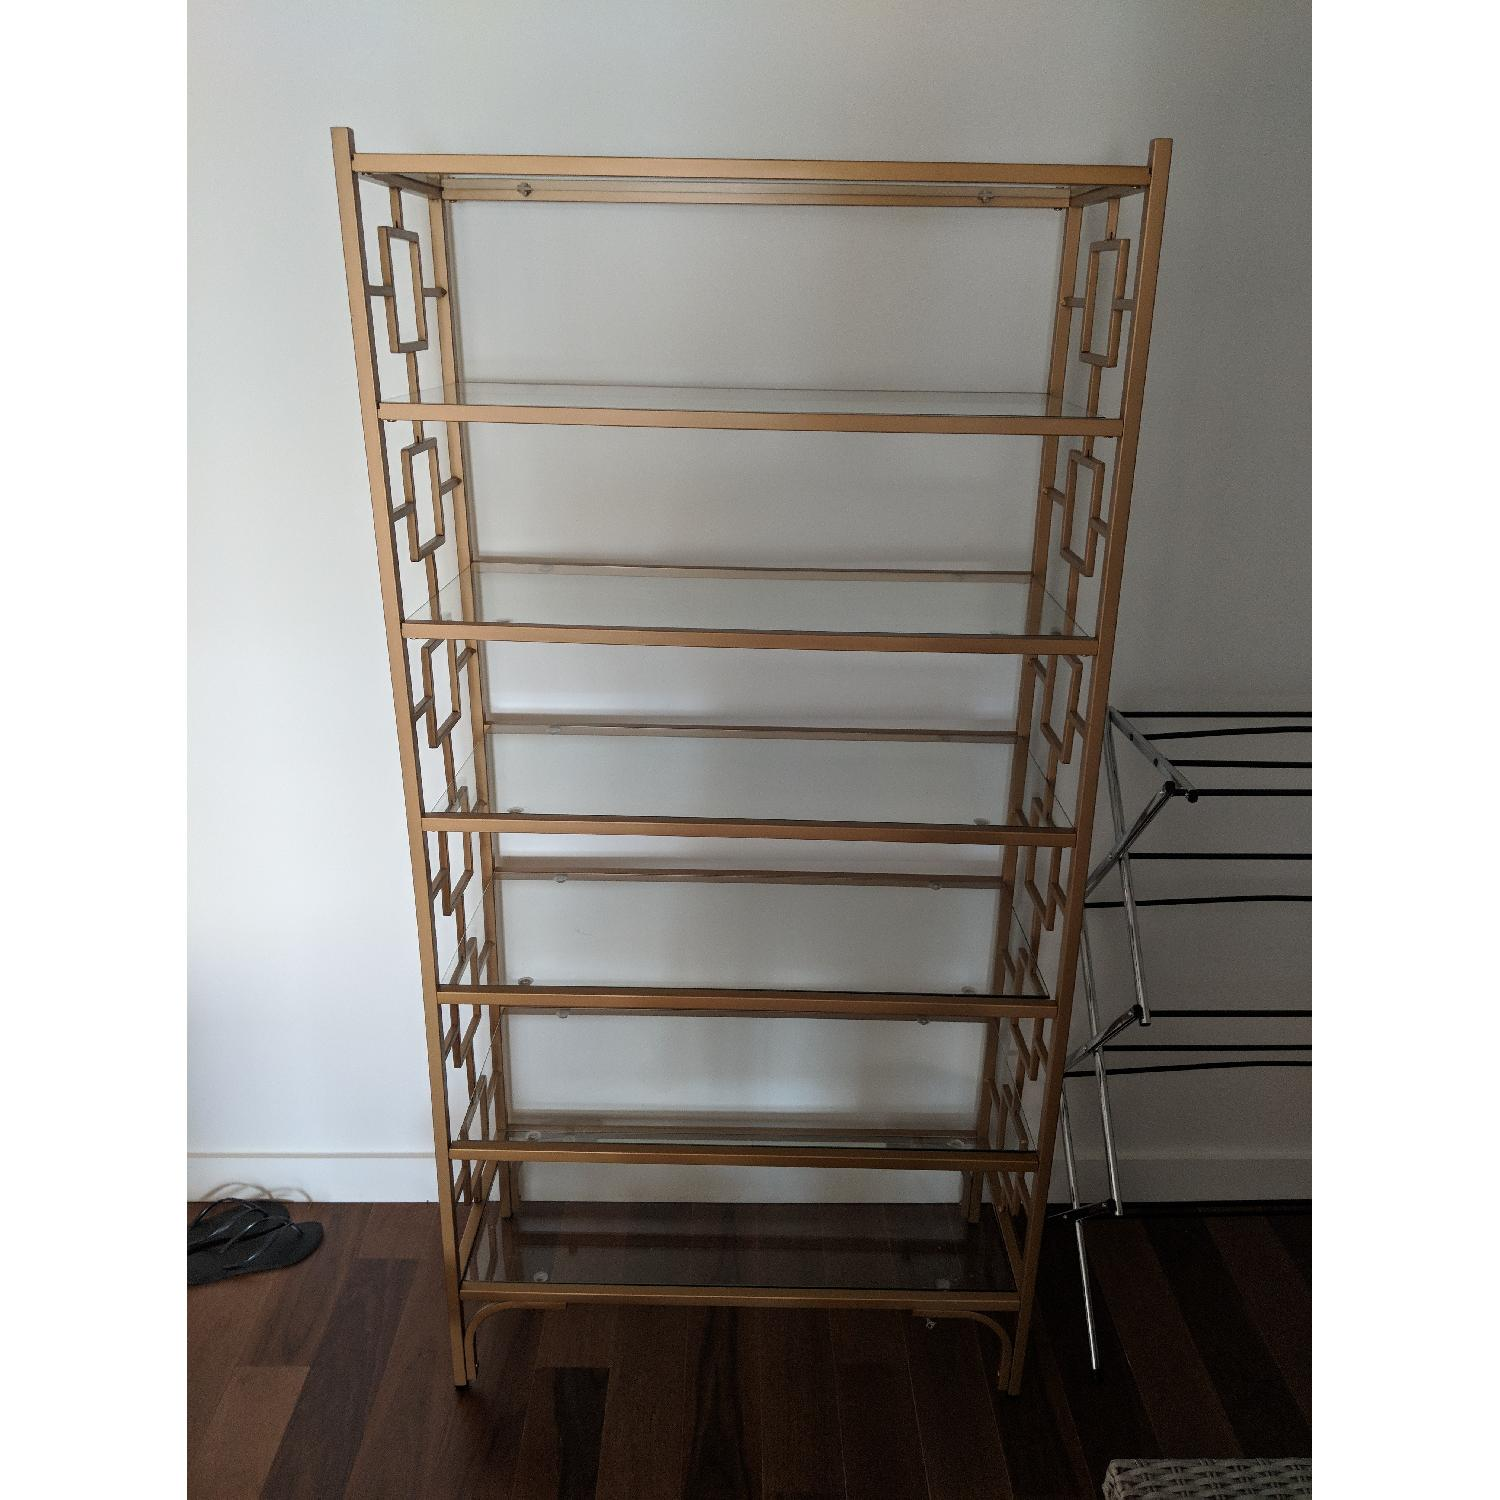 Safavieh Brooklyn 7 Tier Etagere Shelf